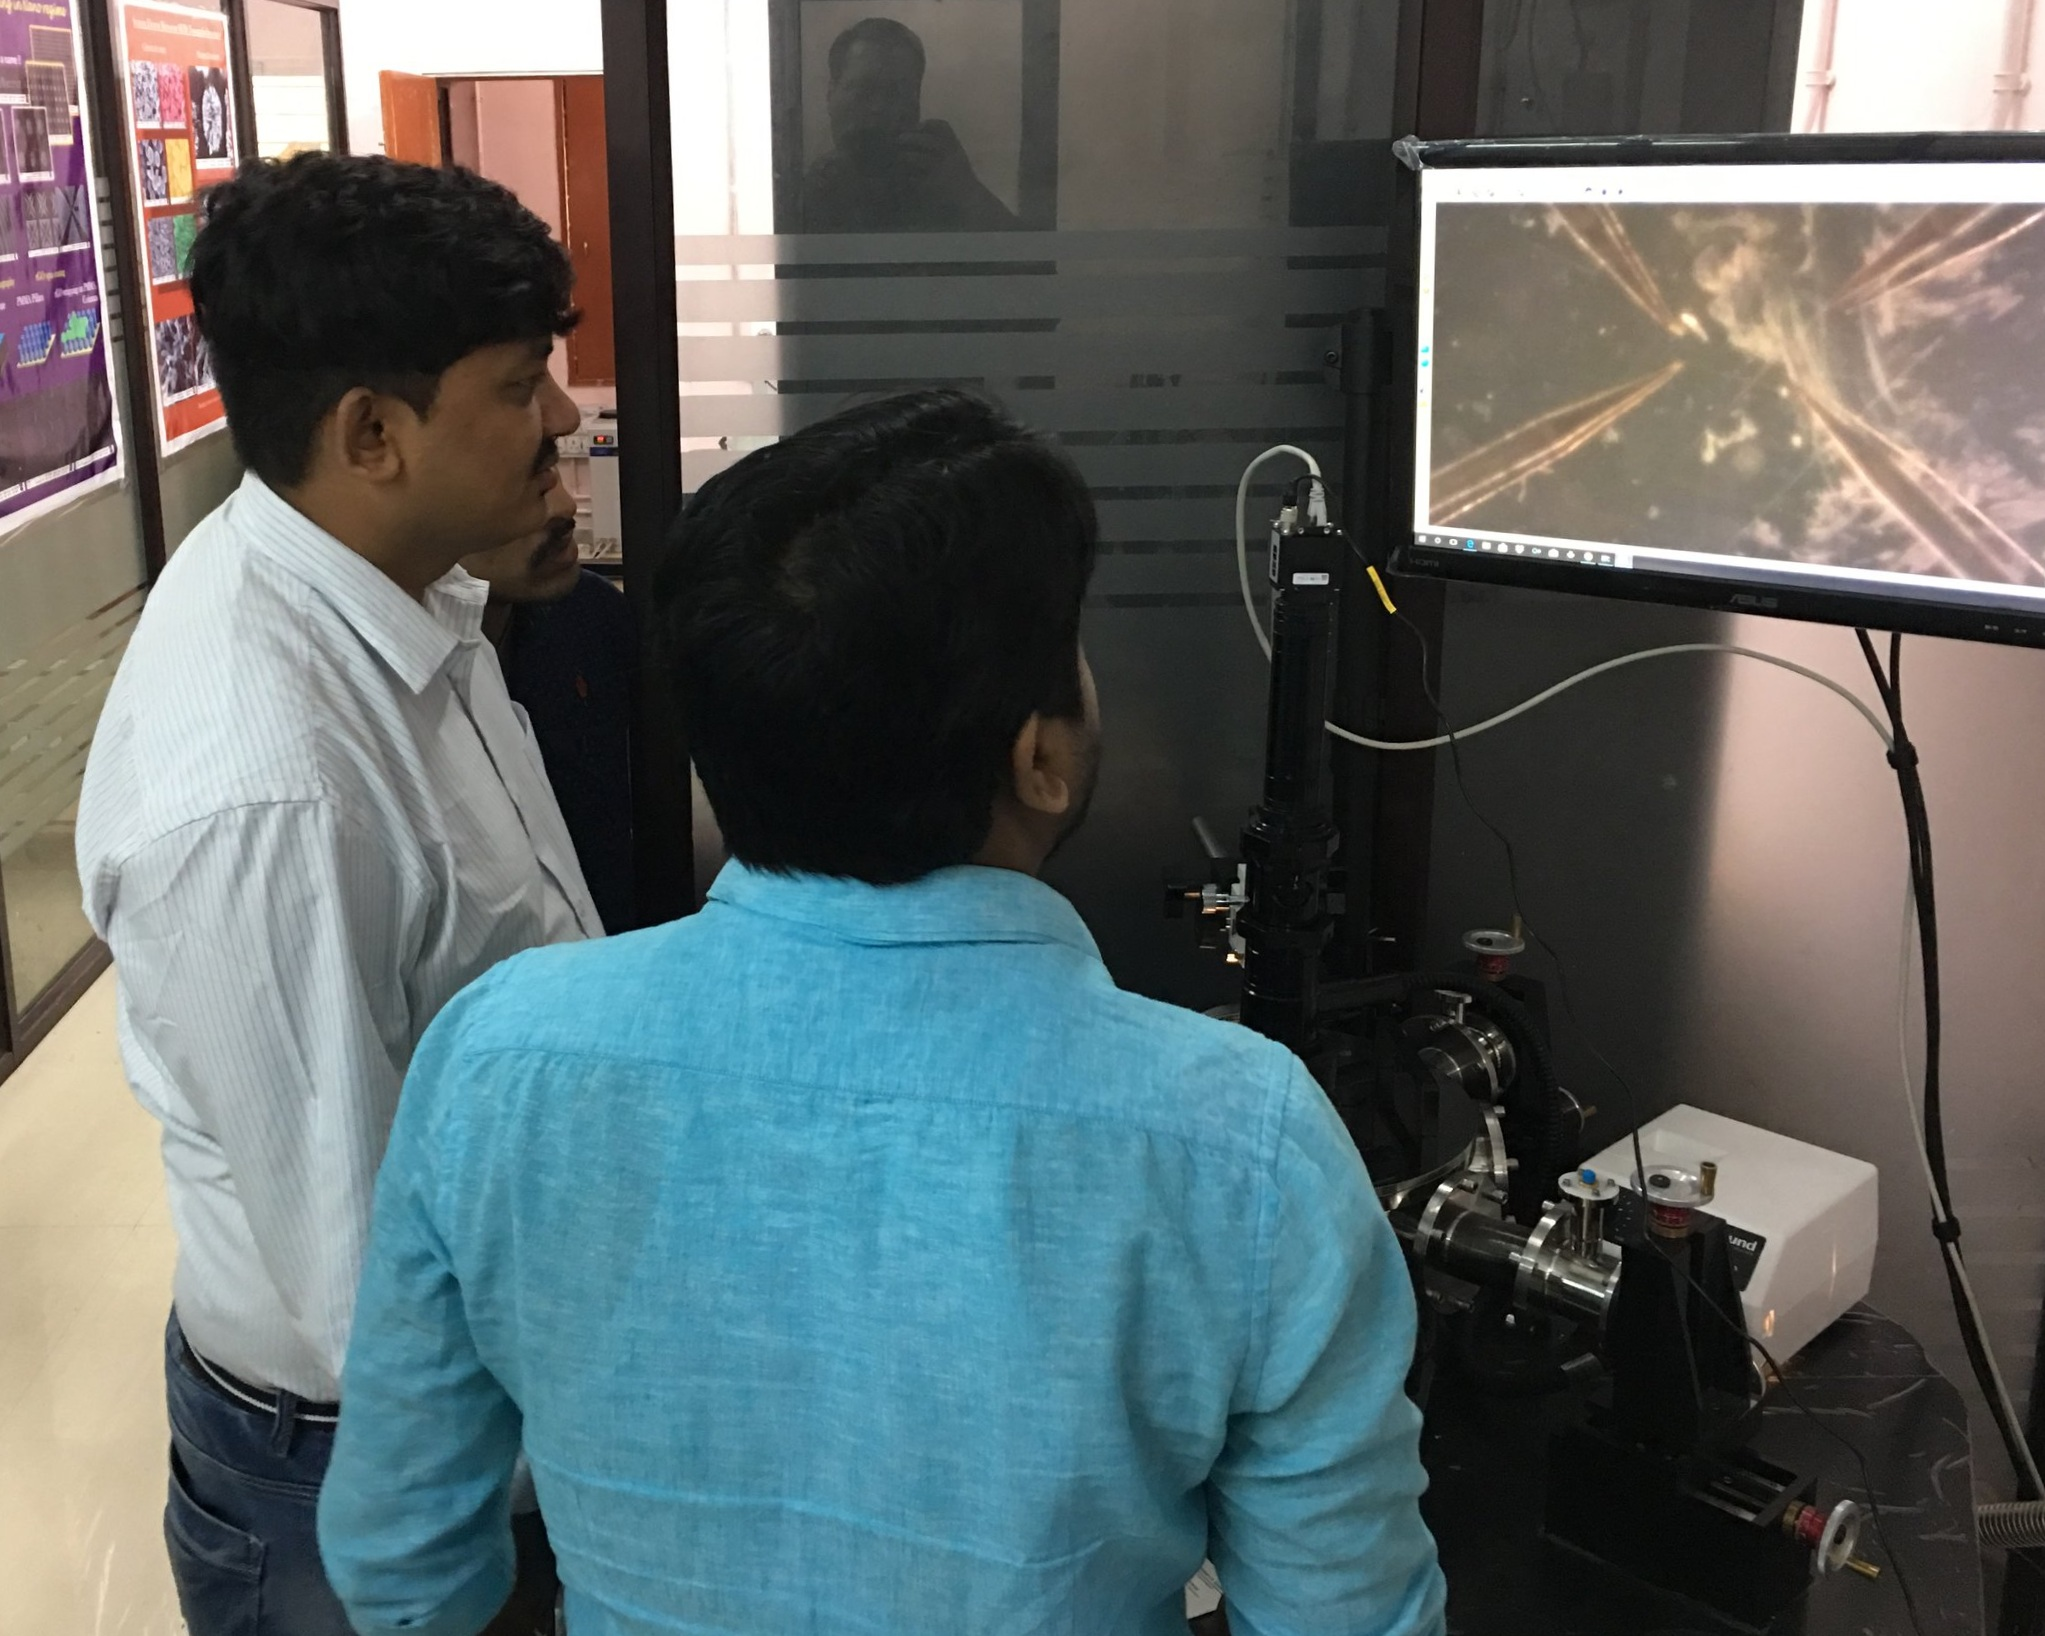 Chattopadhyay Group - Javadpur University: Probe Station for Electron Transport experiments on Nanoscale Wires and Structures